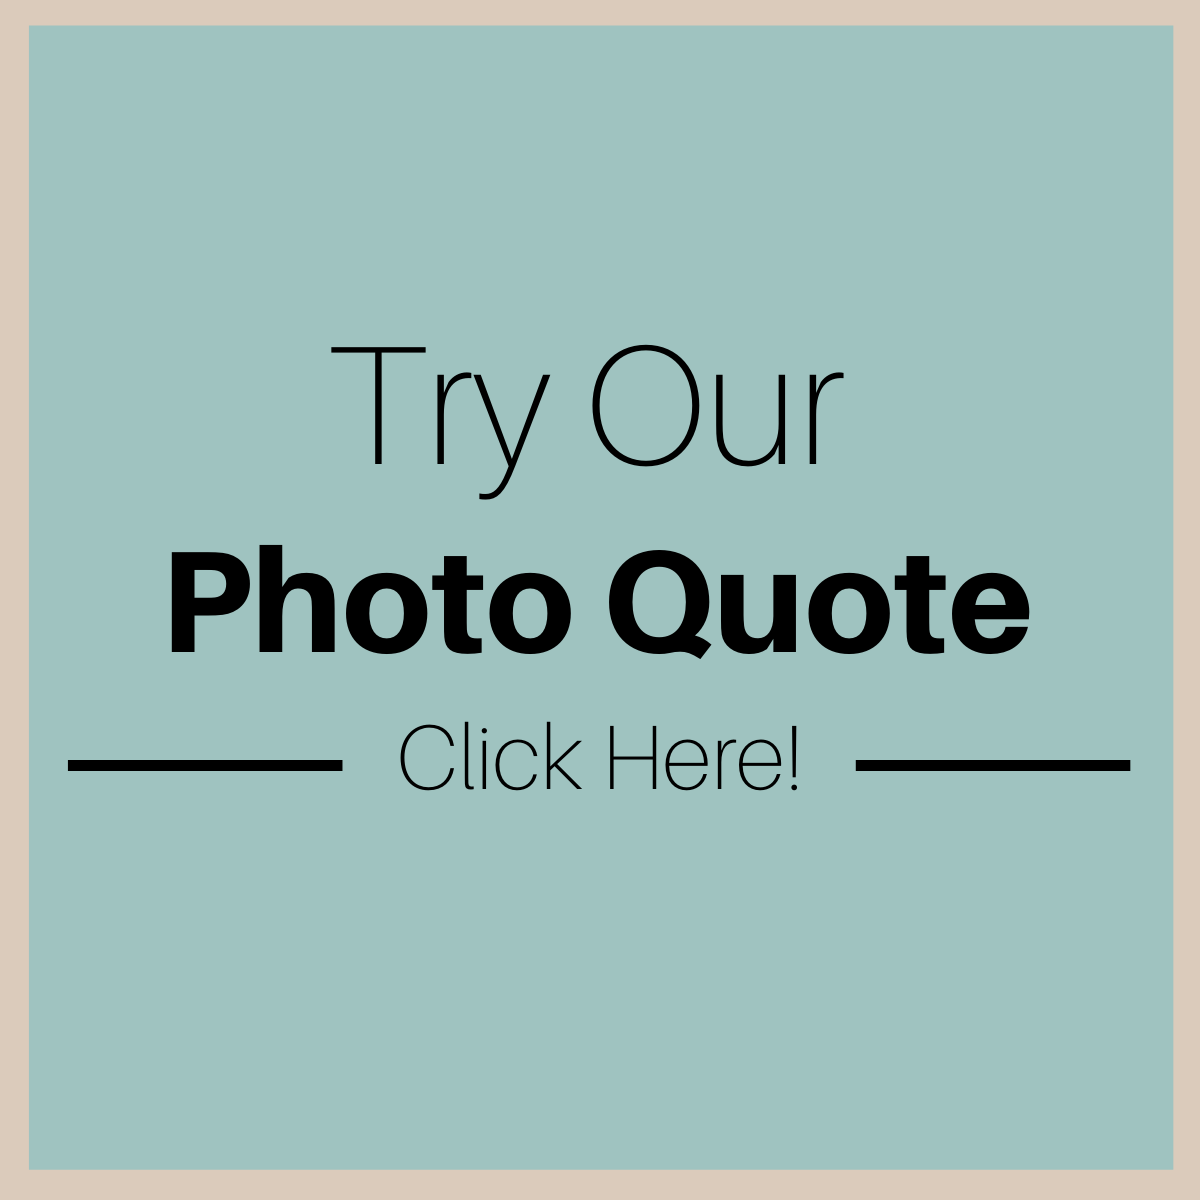 Try out our photo quote!